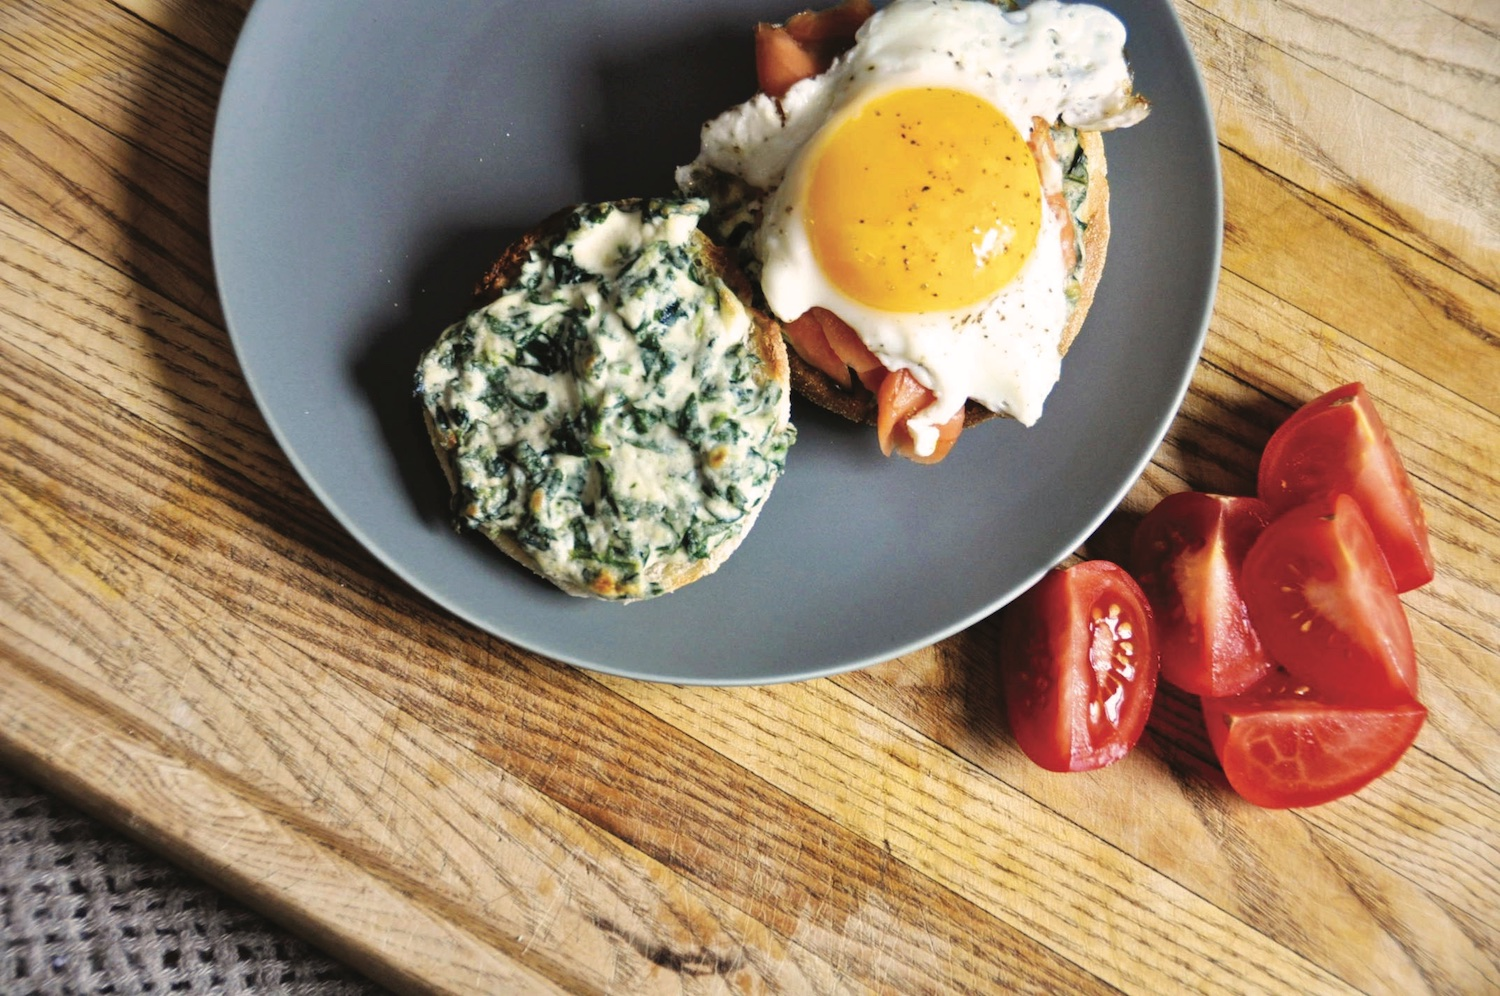 Kale and creamy spinach duo on english muffin